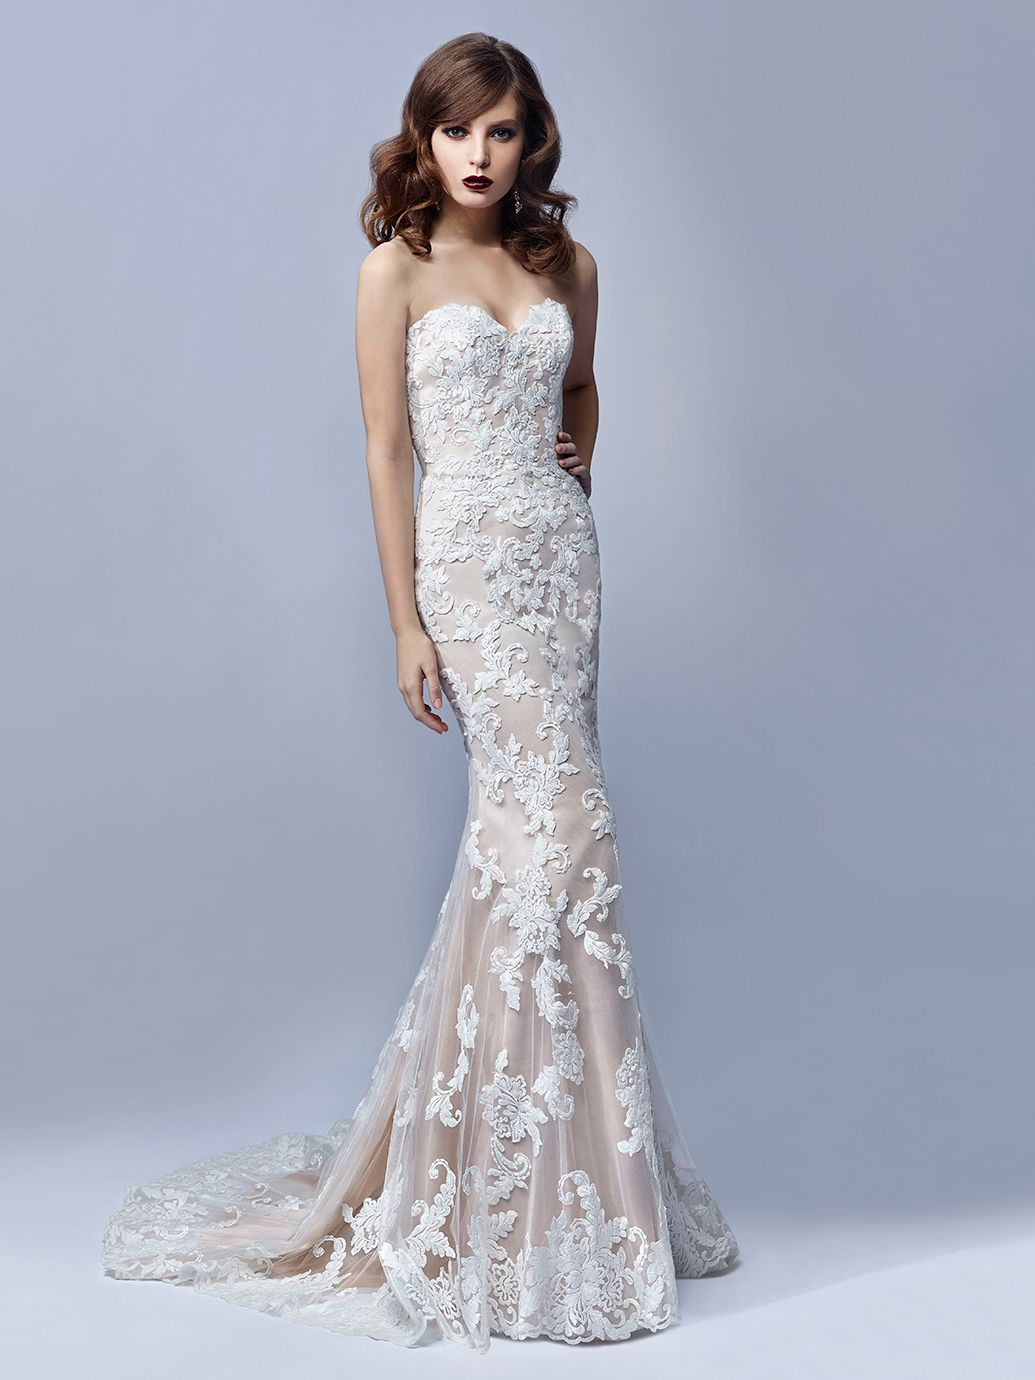 The nude underslip paired with the white lace on this ...